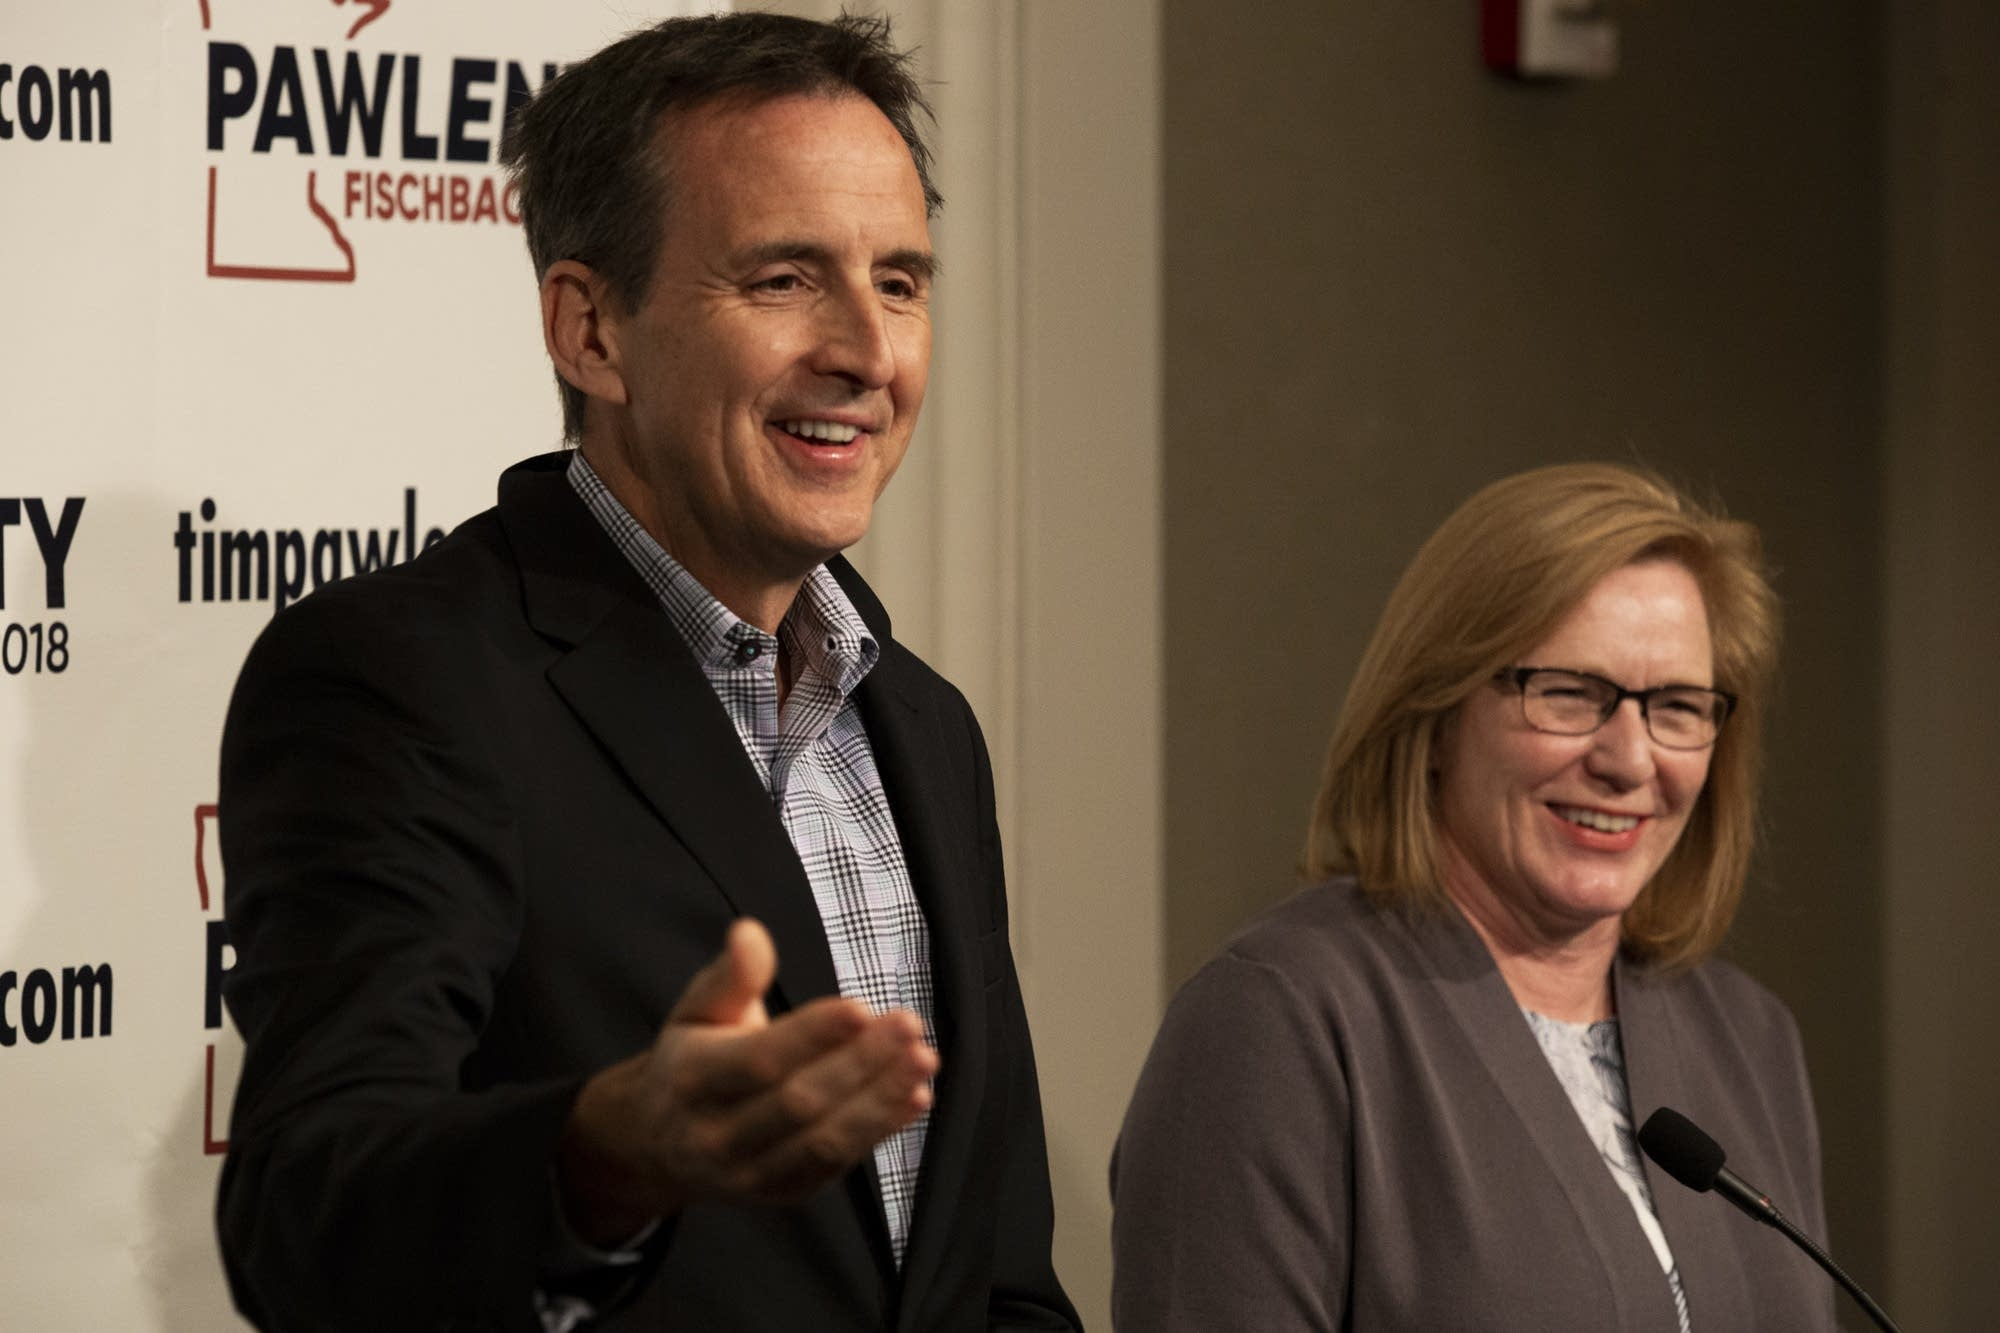 Former Gov. Tim Pawlenty and Republican Lt. Gov. Michelle Fischbach